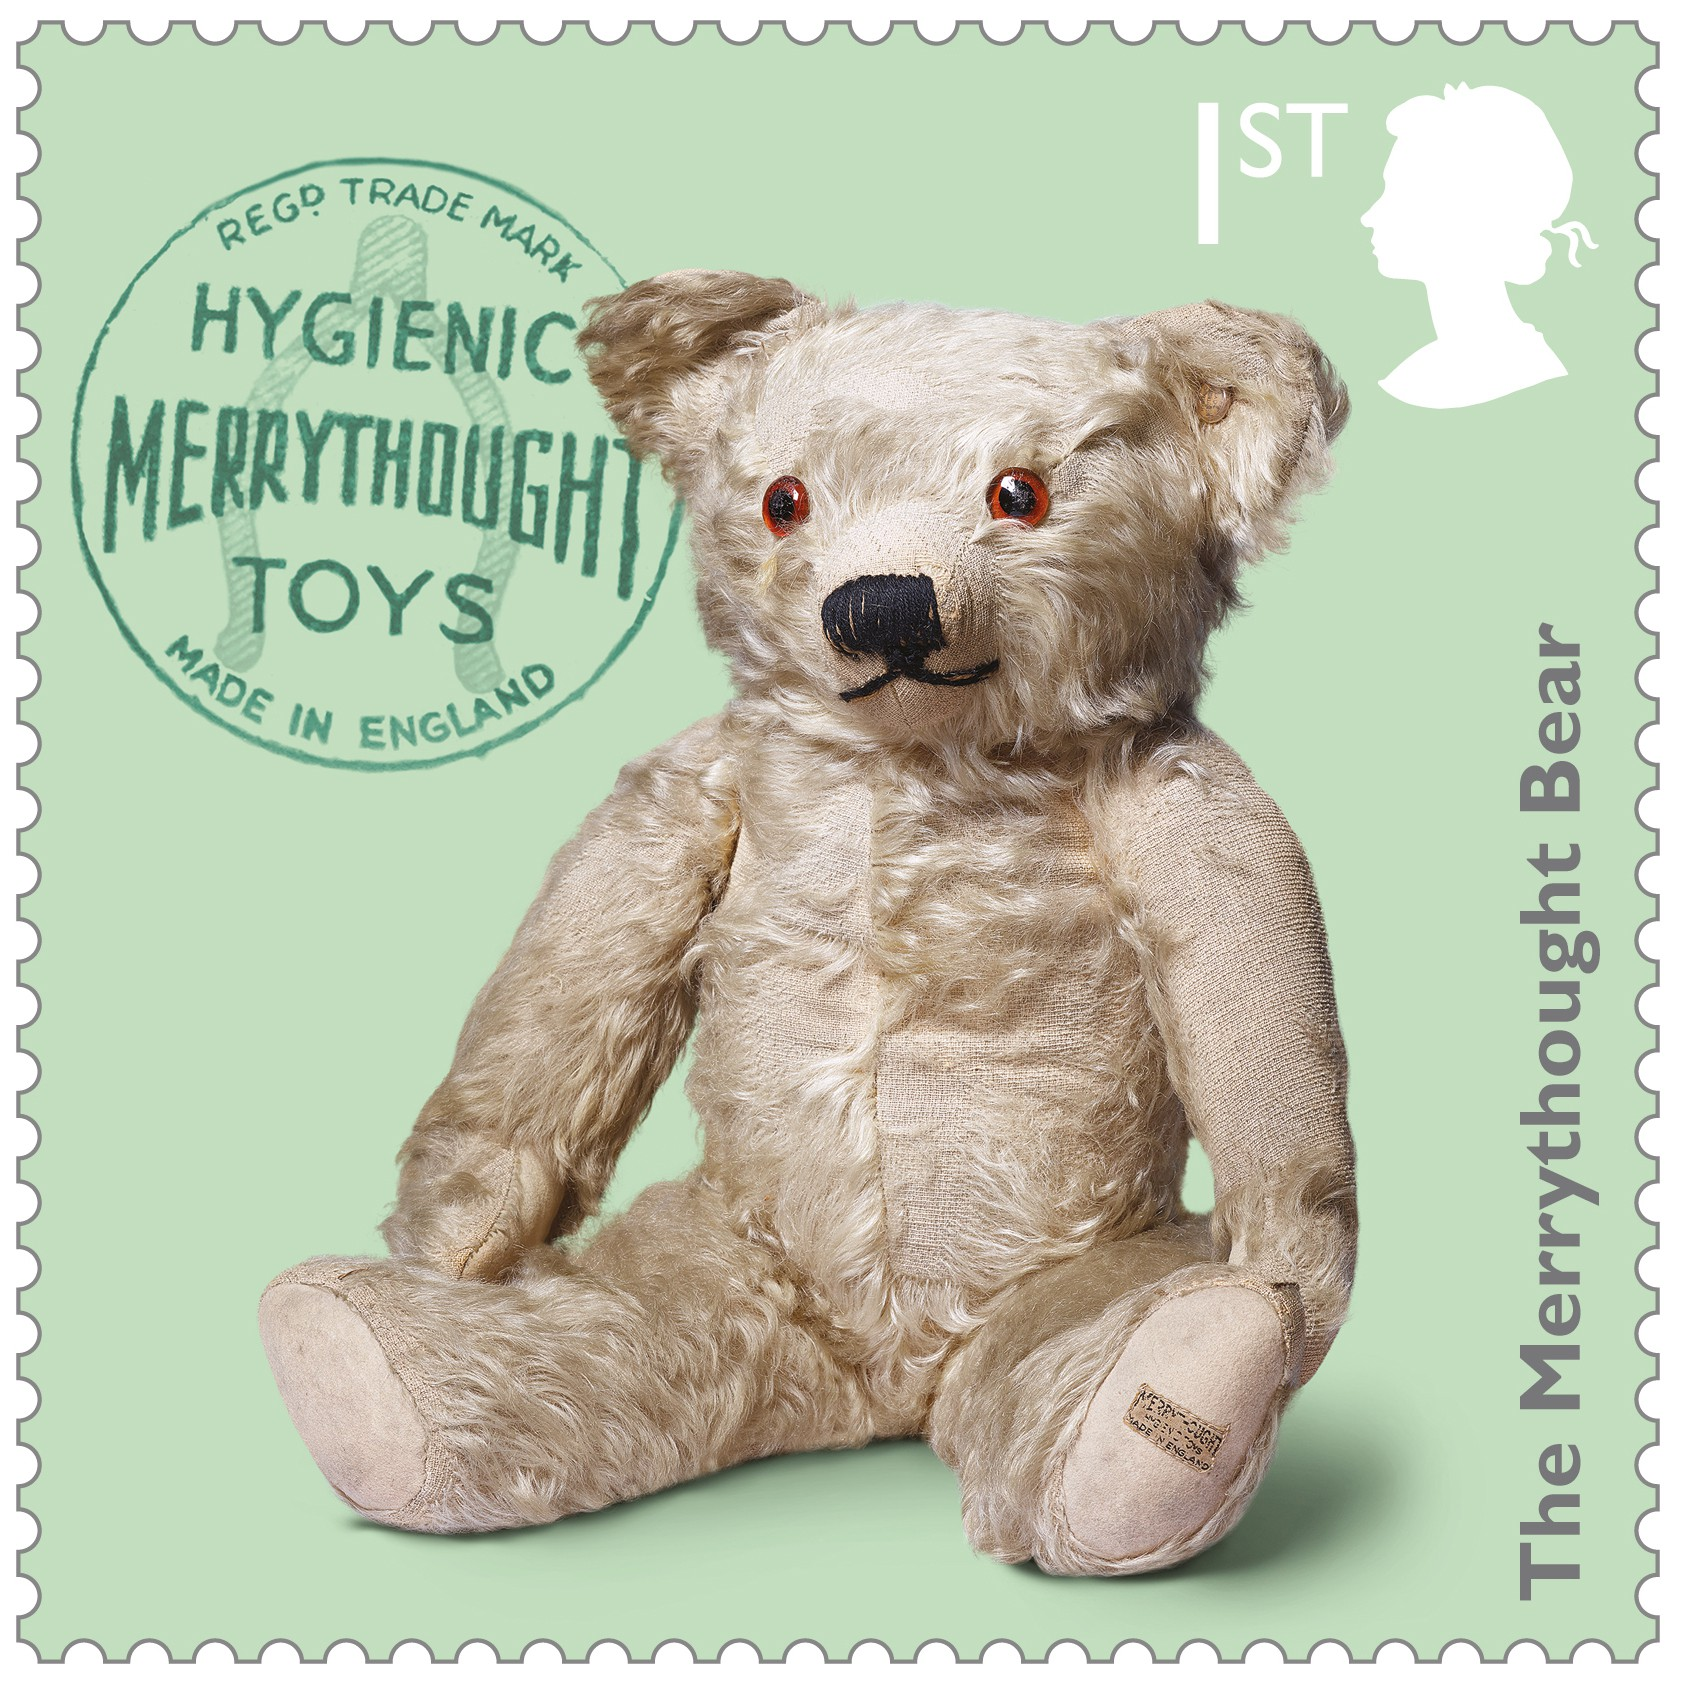 the merrythought bear stamp